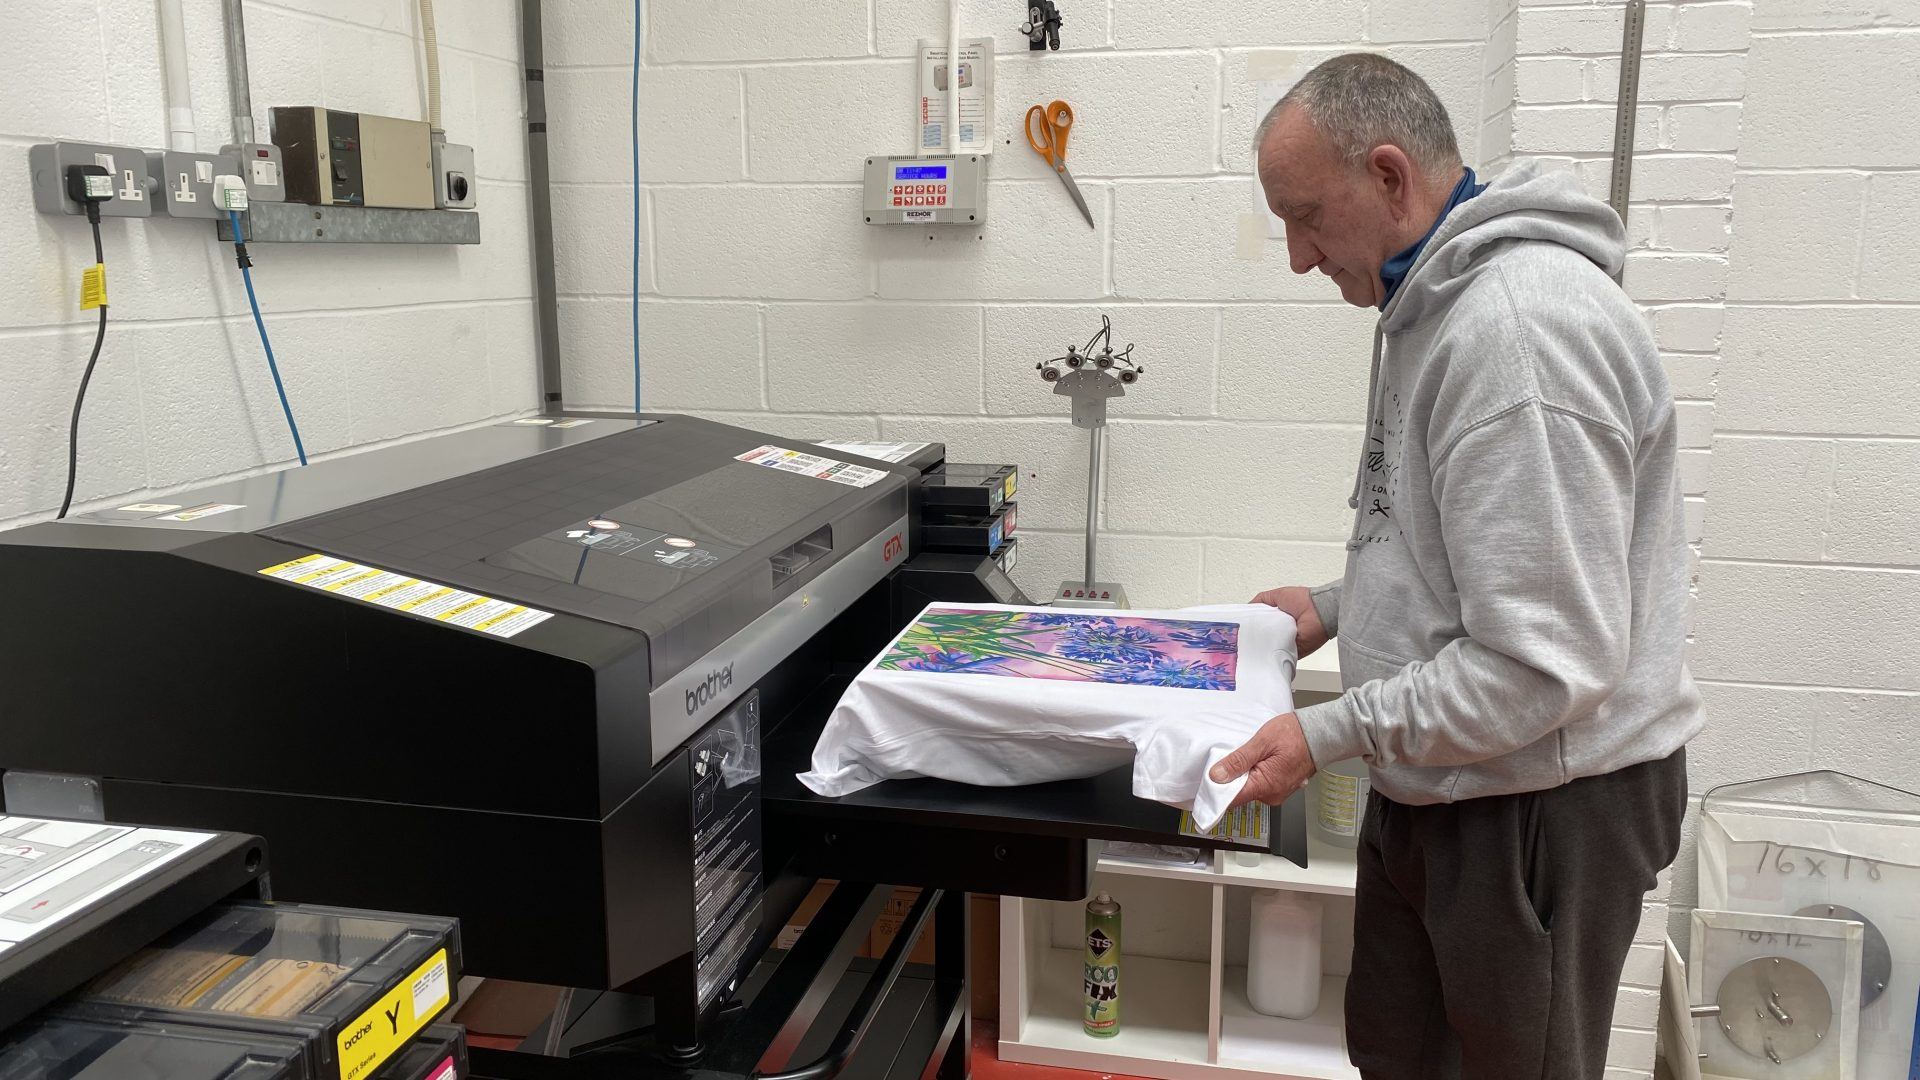 direct to garment printing perfect for print on demand production.